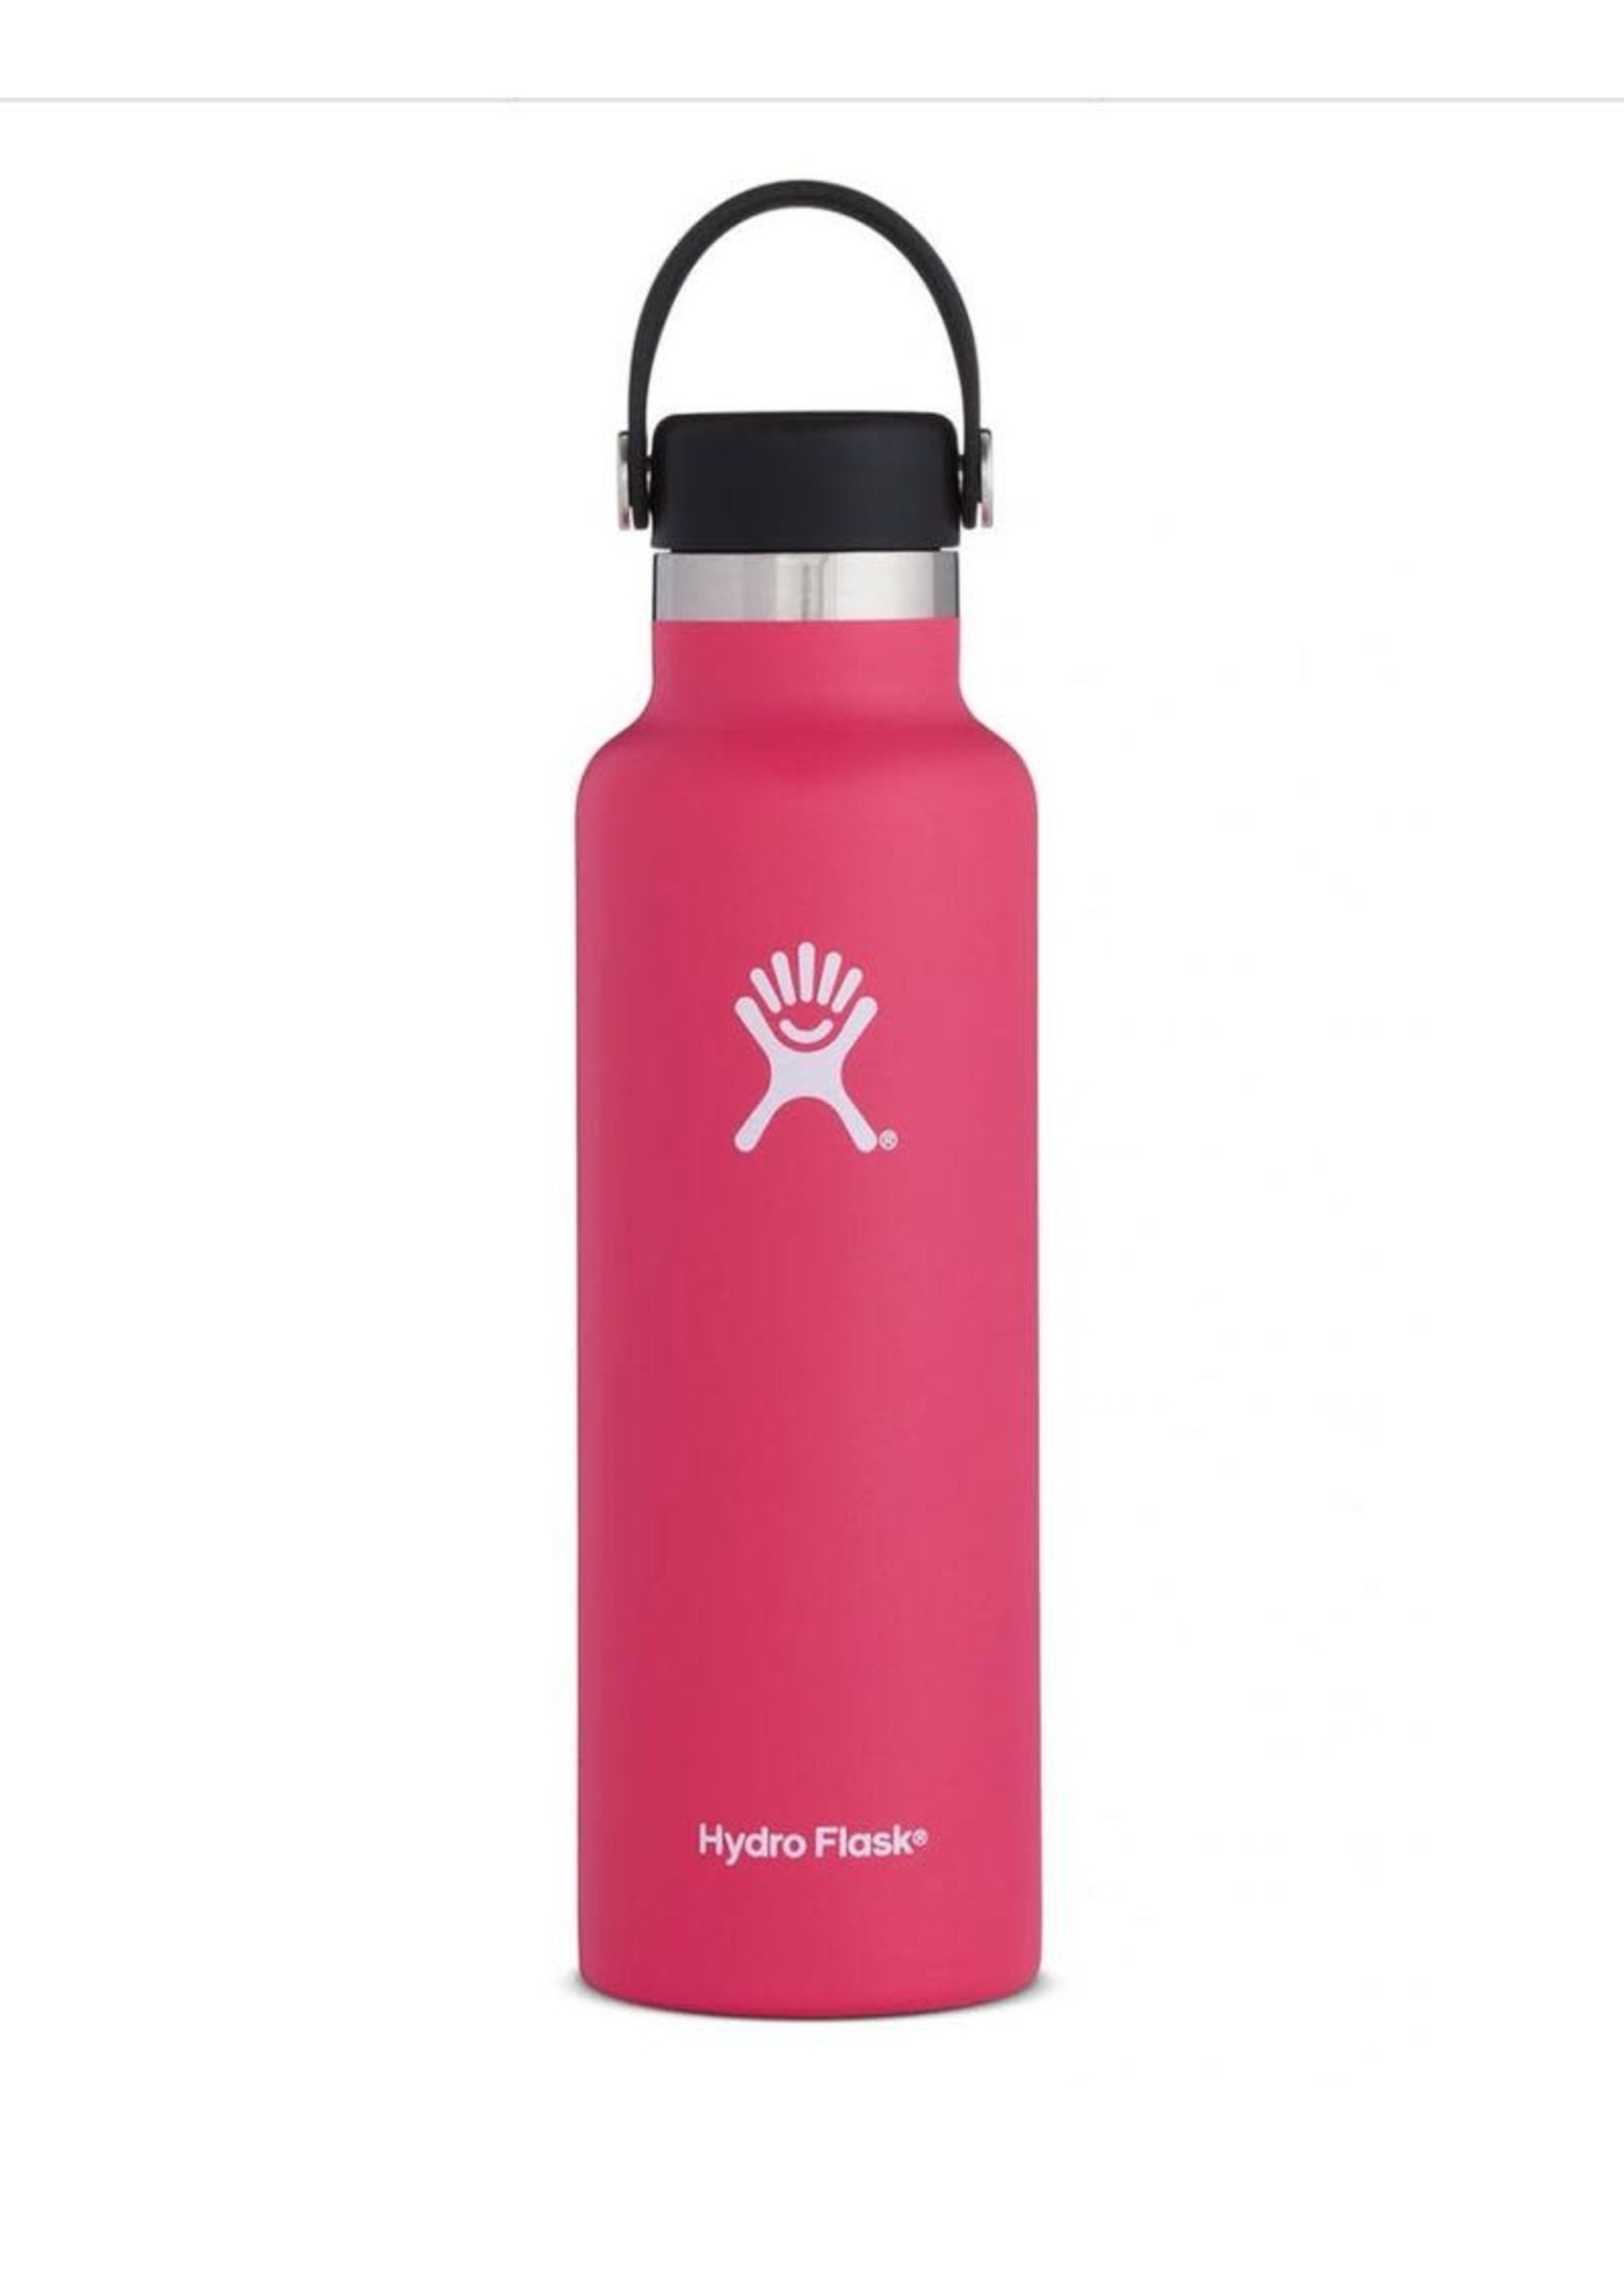 Hydro Flask Hydro Flask, 21 oz Standard Mouth Flex Cap Insulated Stainless Steel Bottle in Carnation